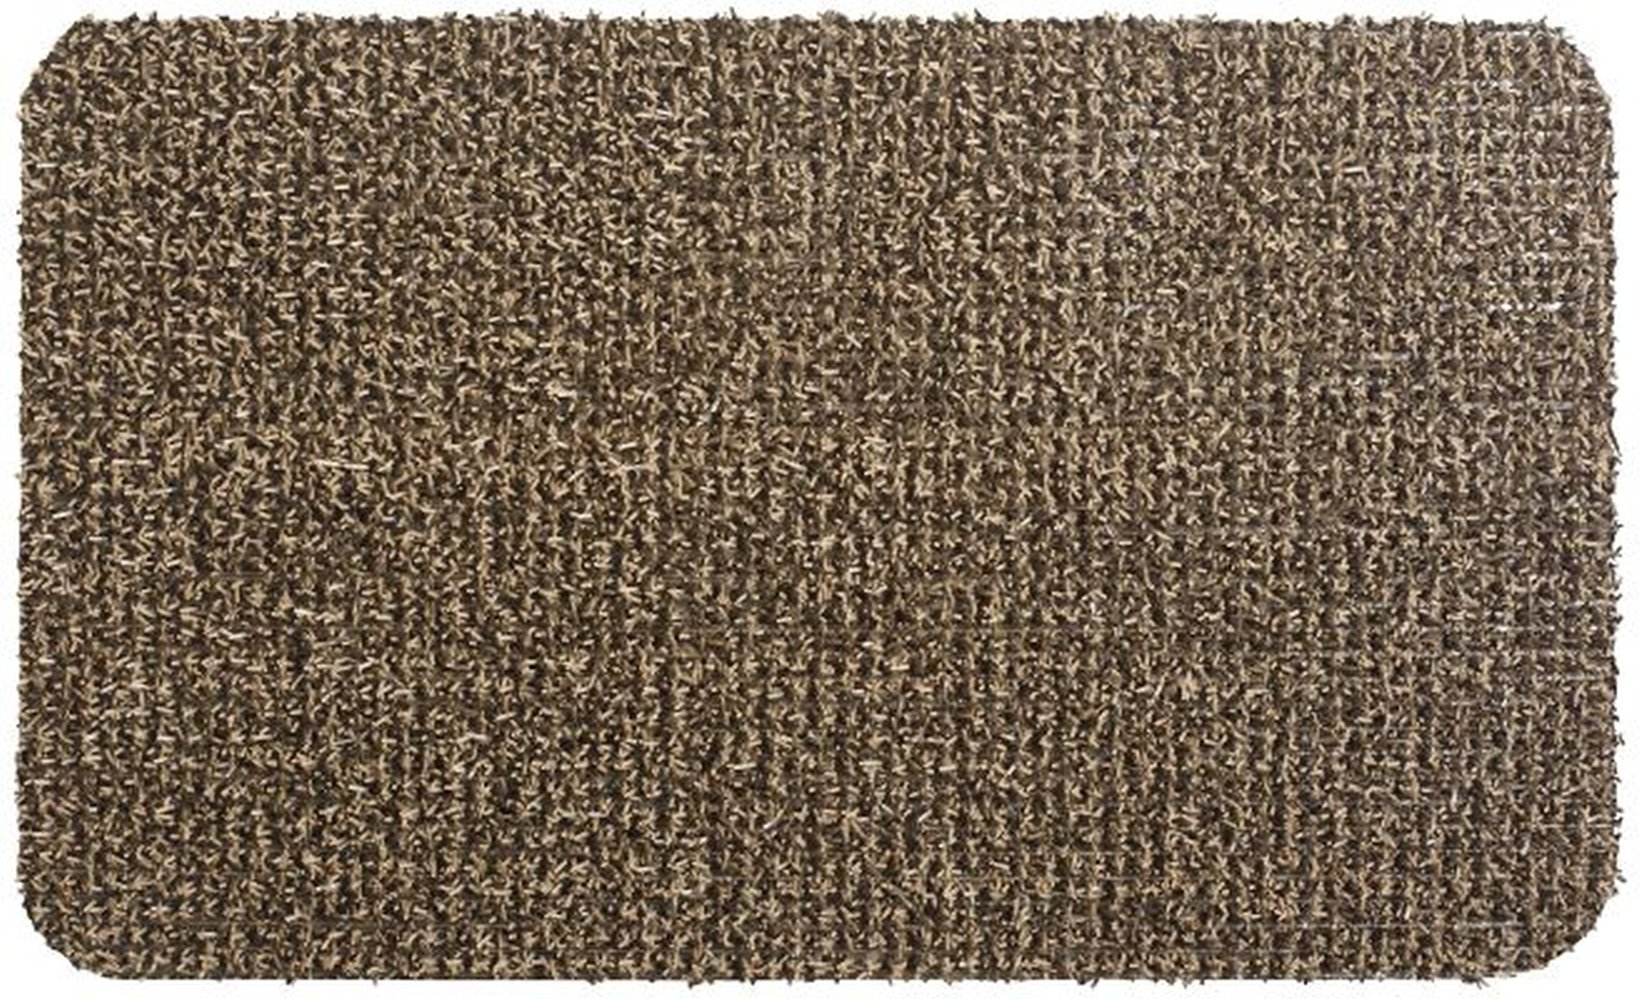 Grassworx Clean Machine Flair Doormat, 18'' x 30'', Sandbar (10372117)